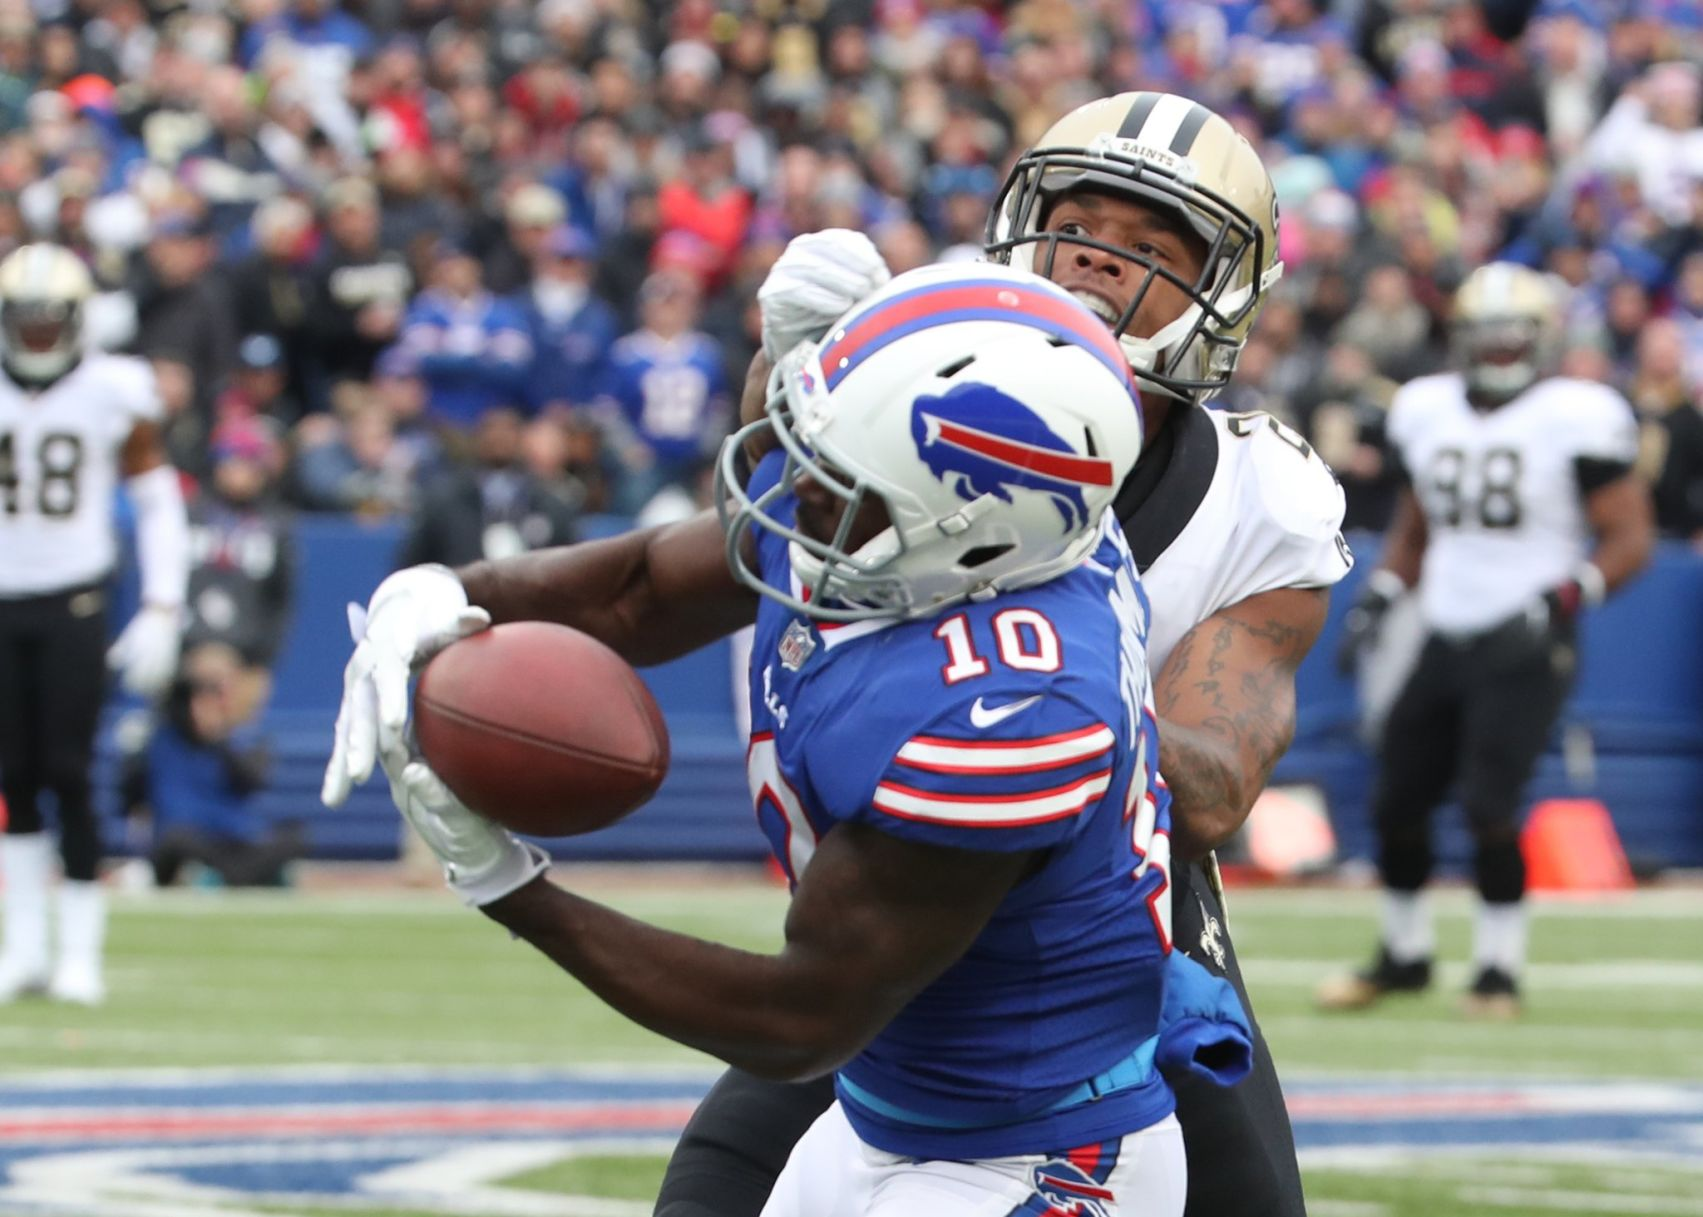 Bills injury update: Shareece Wright out, Deonte Thompson ...